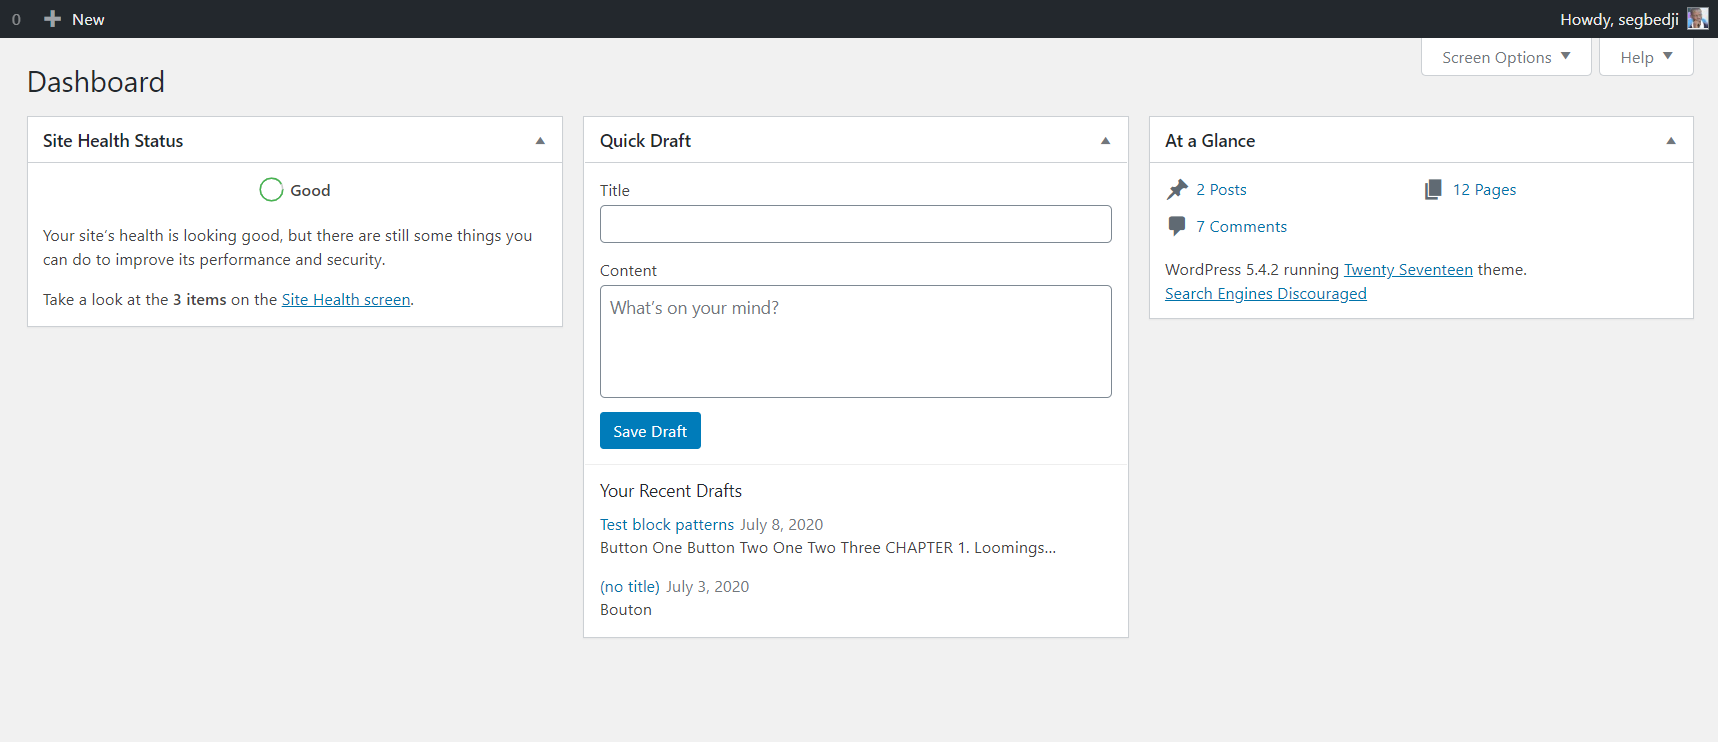 Before WordPress 5.5: There were no controls to move and reorder Dashboard widgets